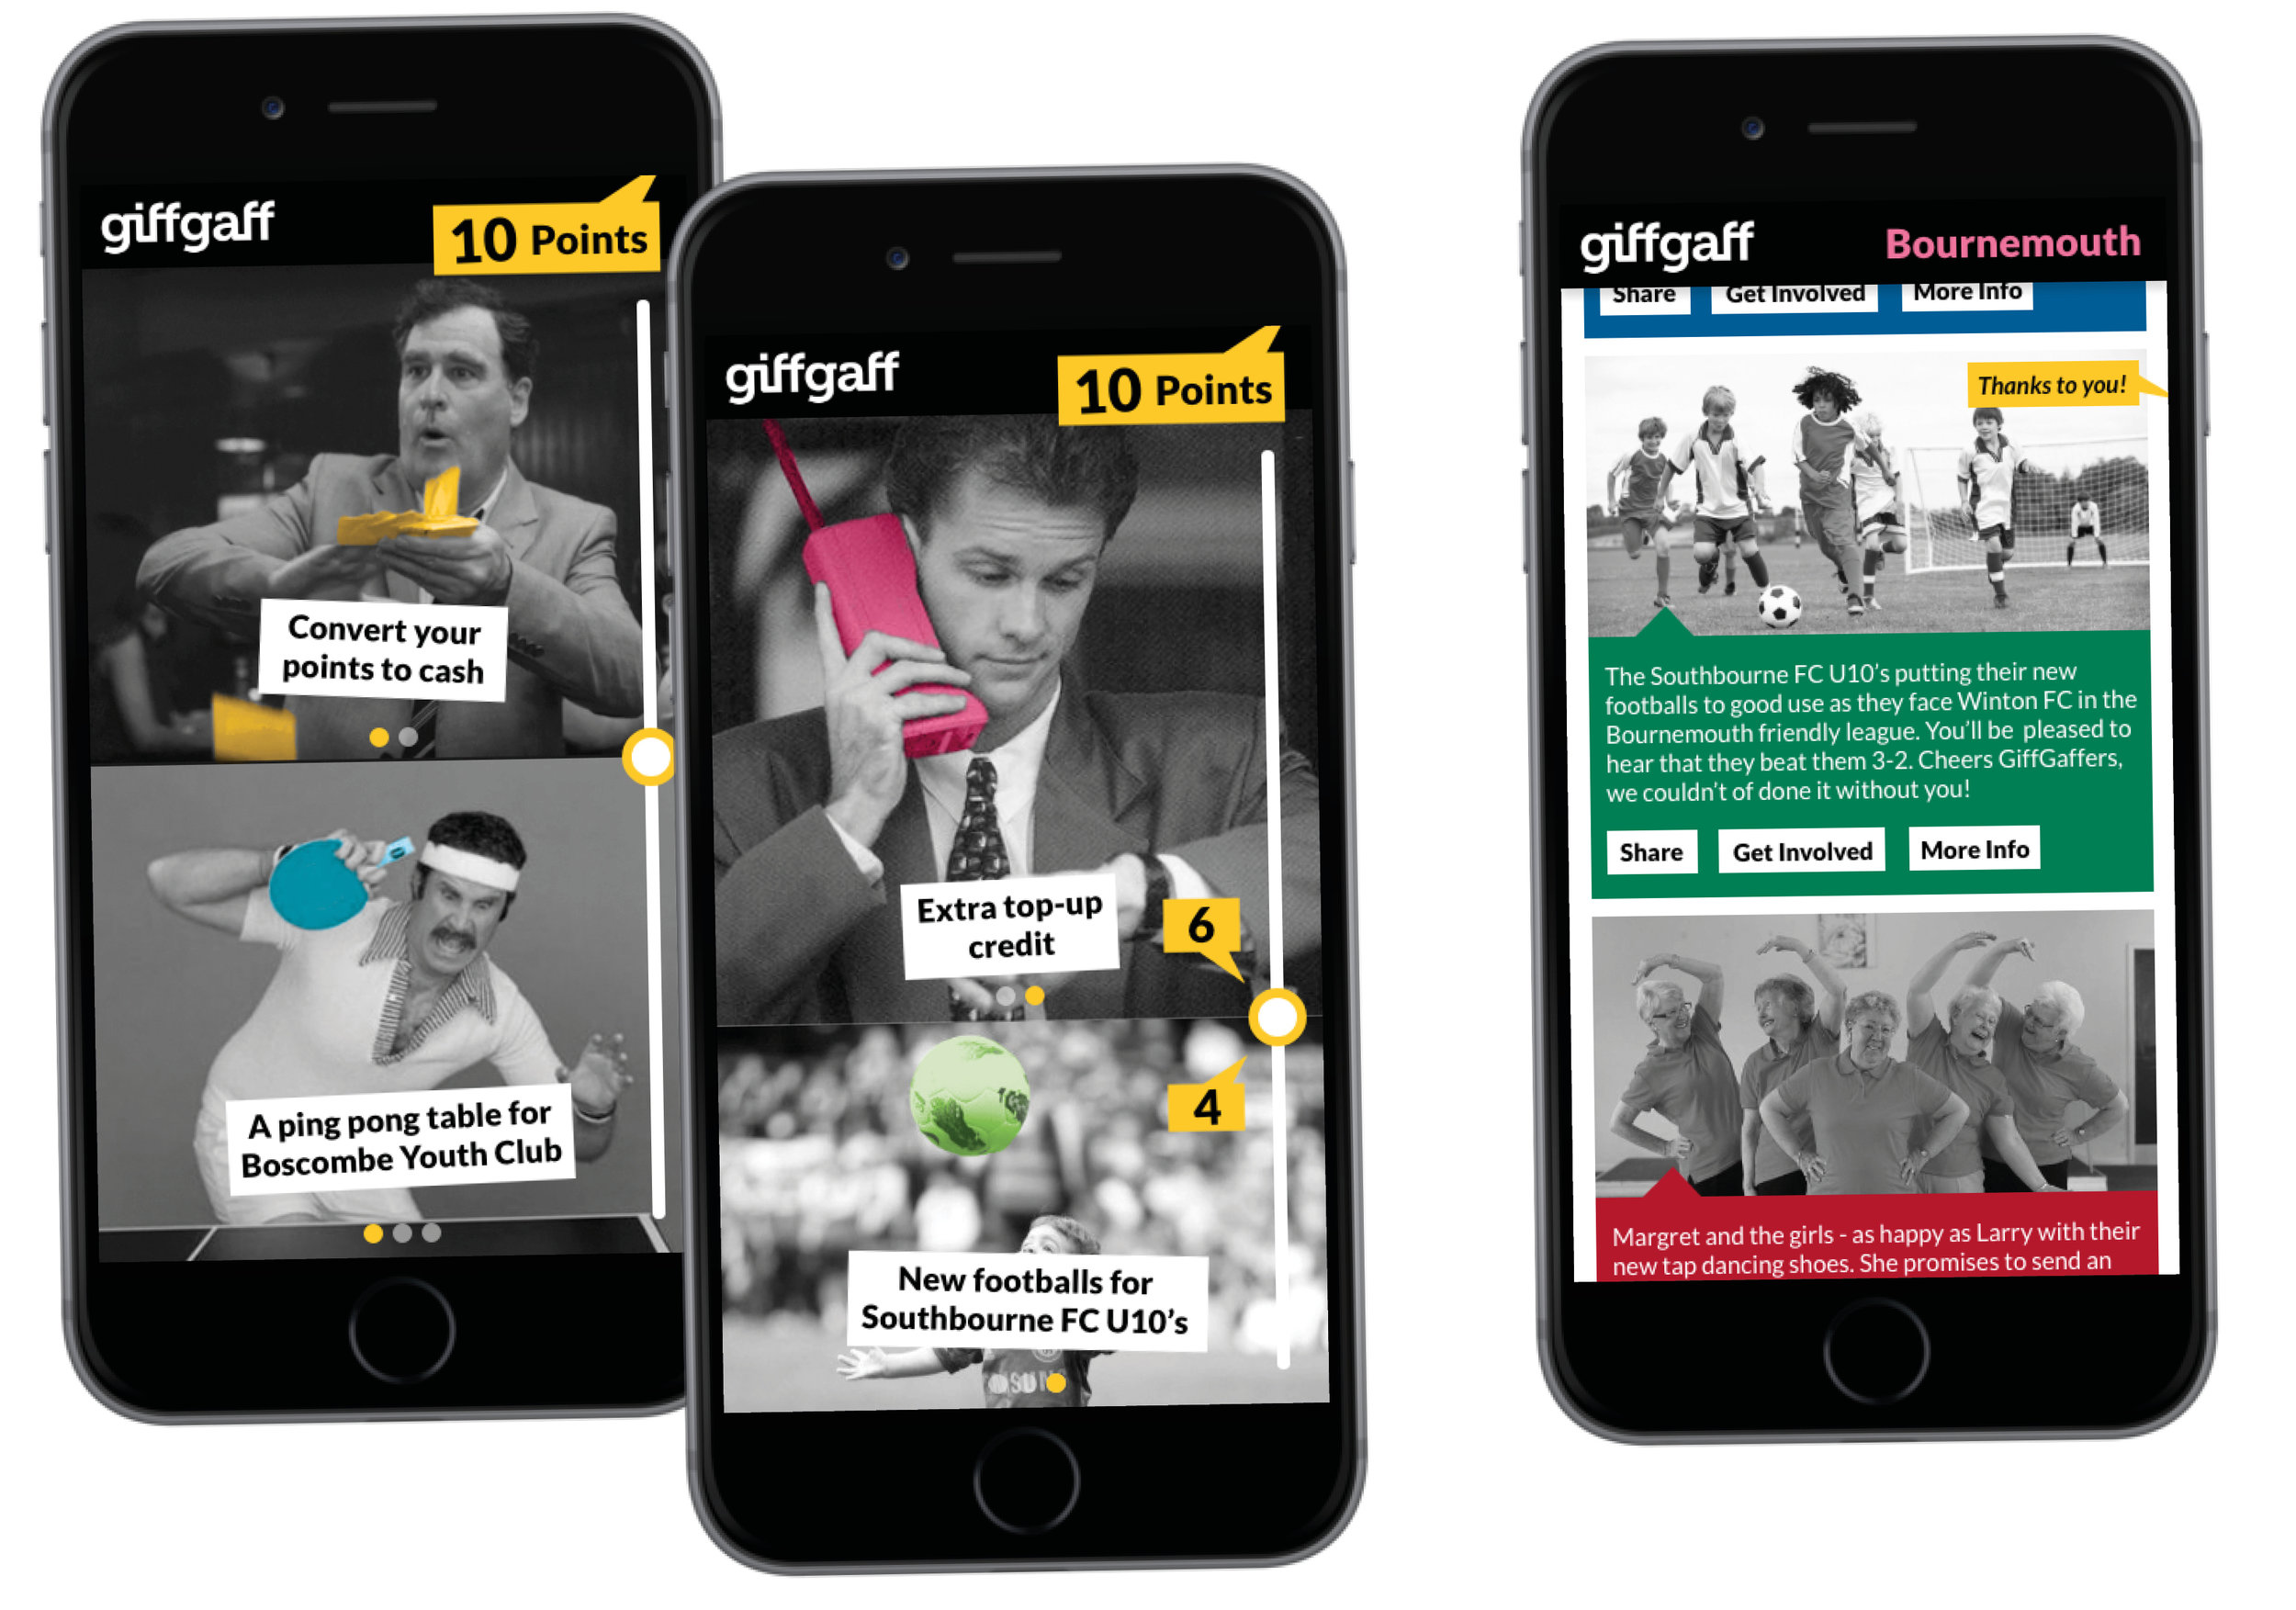 Giff Gaff: Give & Get - Giff Gaff: Give & Get is a reward scheme experience that encourages its users to actively participate within in their local community. Winner of a D&AD New Blood Award 2018.